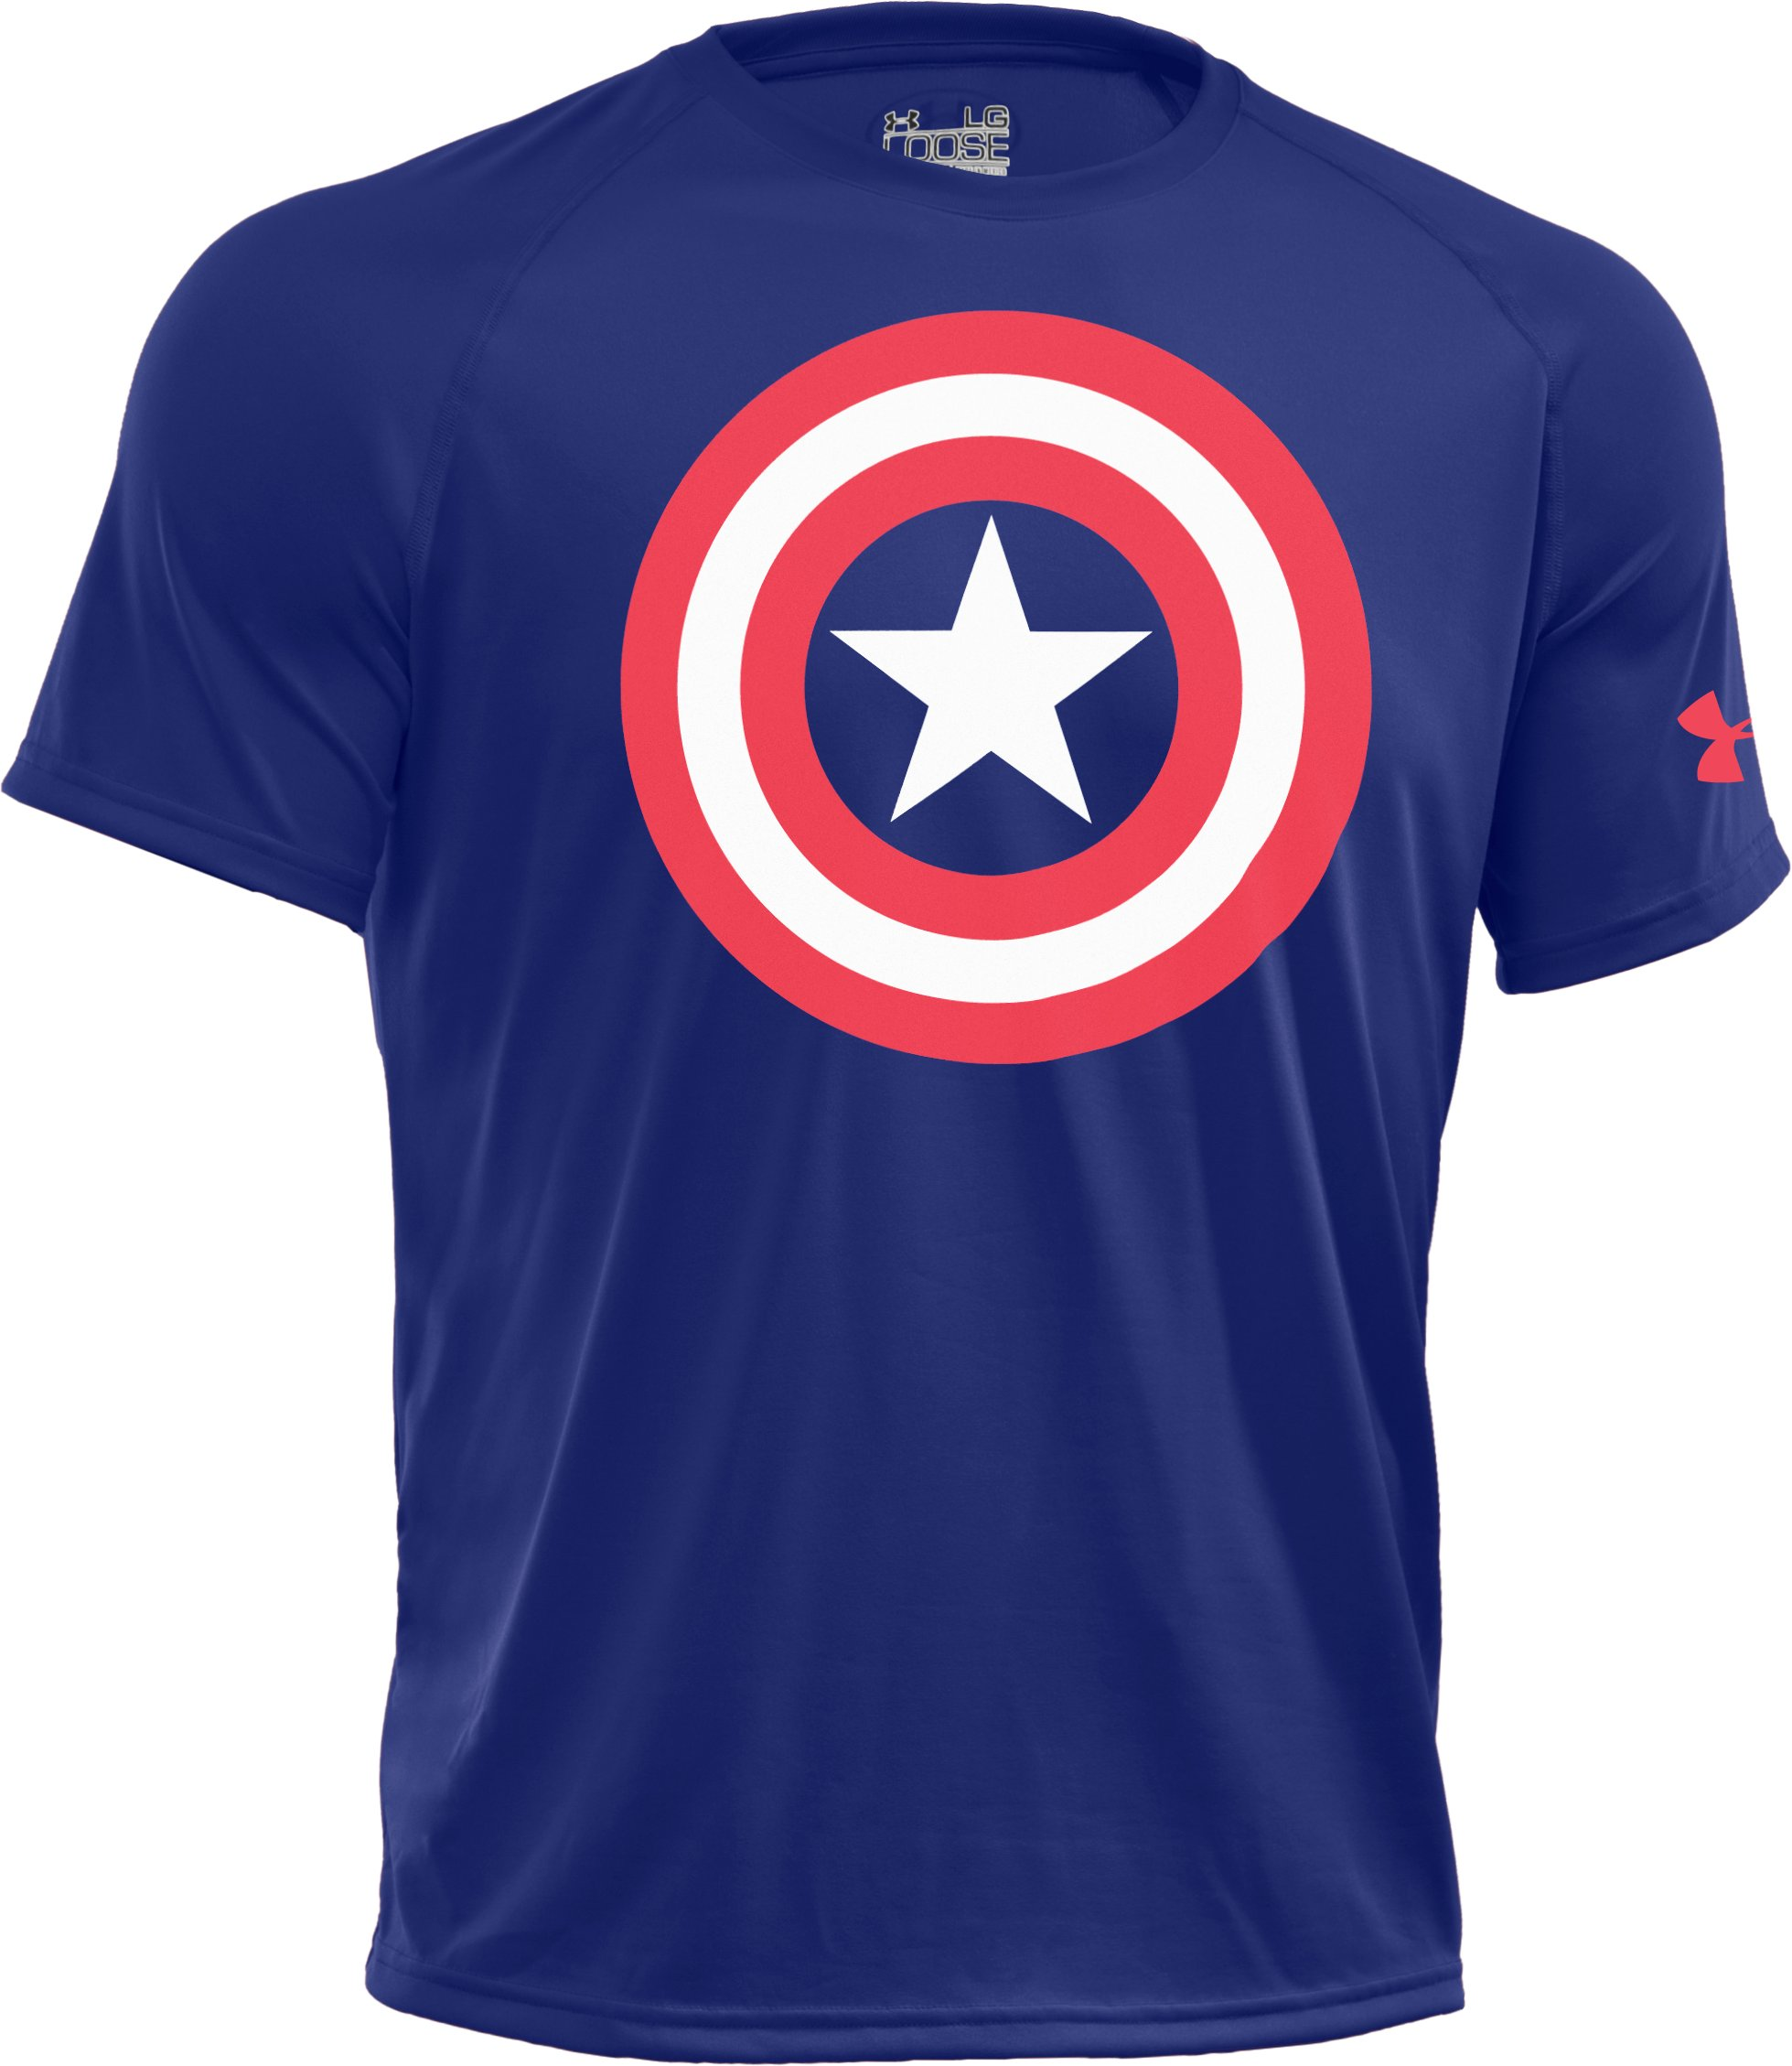 Men's Under Armour® Alter Ego Captain America T-Shirt, Royal